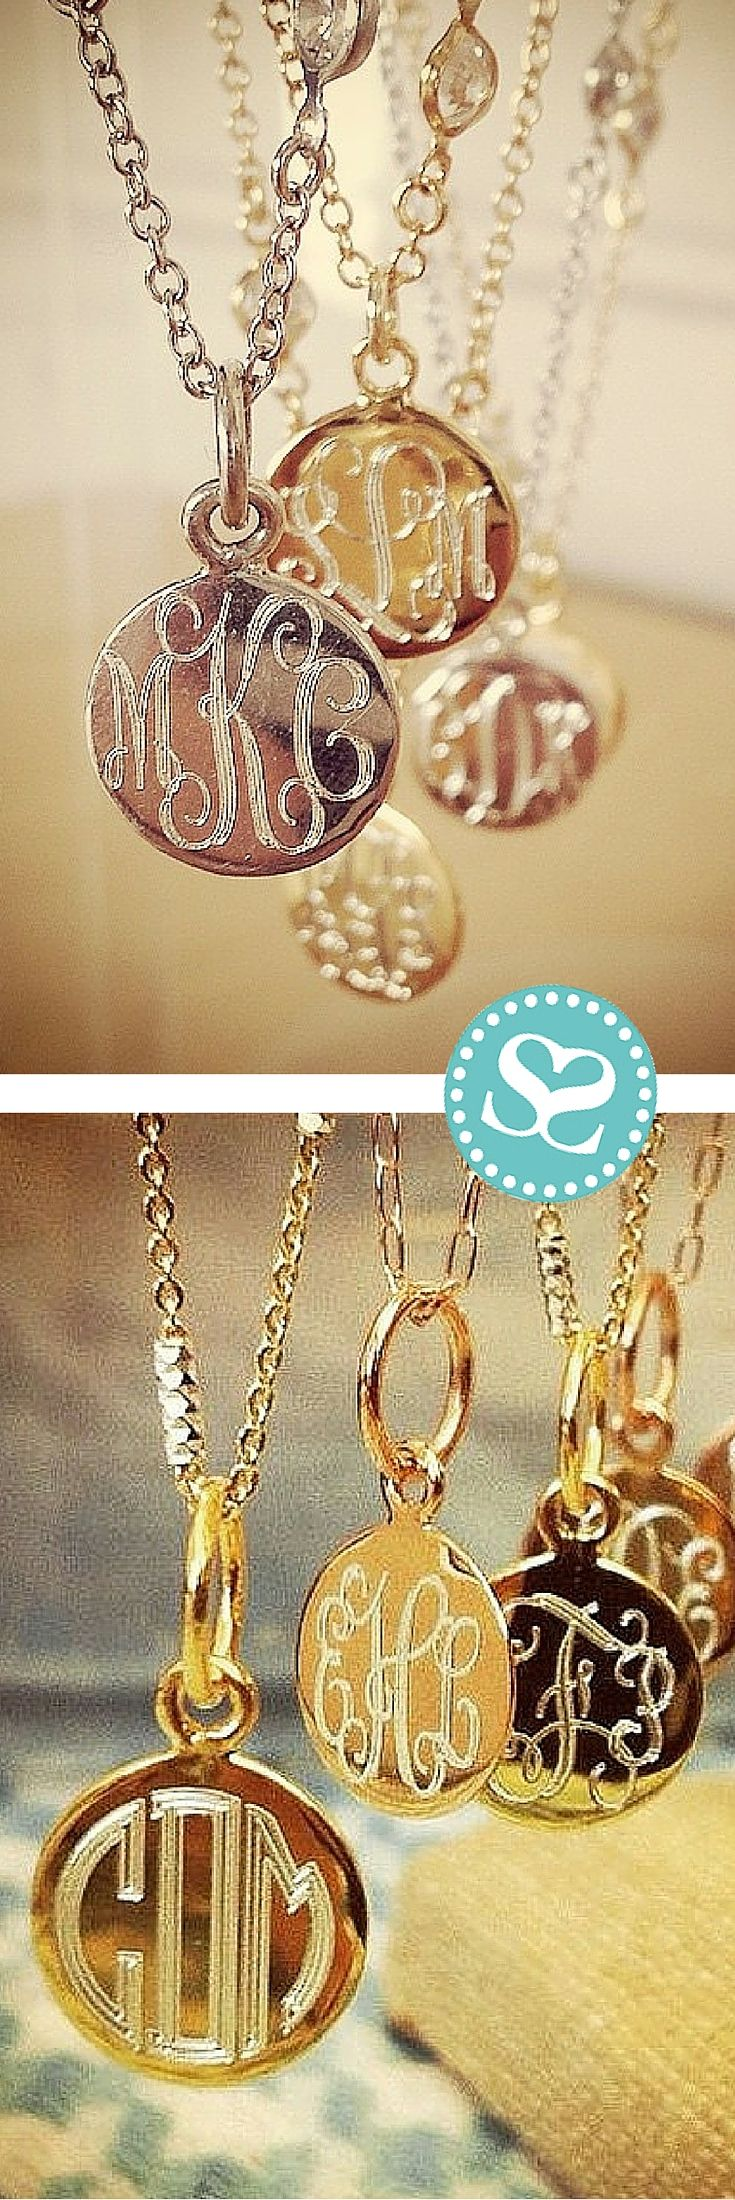 Stunning delicate monogrammed necklaces in sterling silver with a thick plating of gold or rose gold. Our craftsmen engrave these pieces locally with love.  Customize yours with a monogram on the front and a special sentiment or date on the back for the most special gift. #swellcaroline